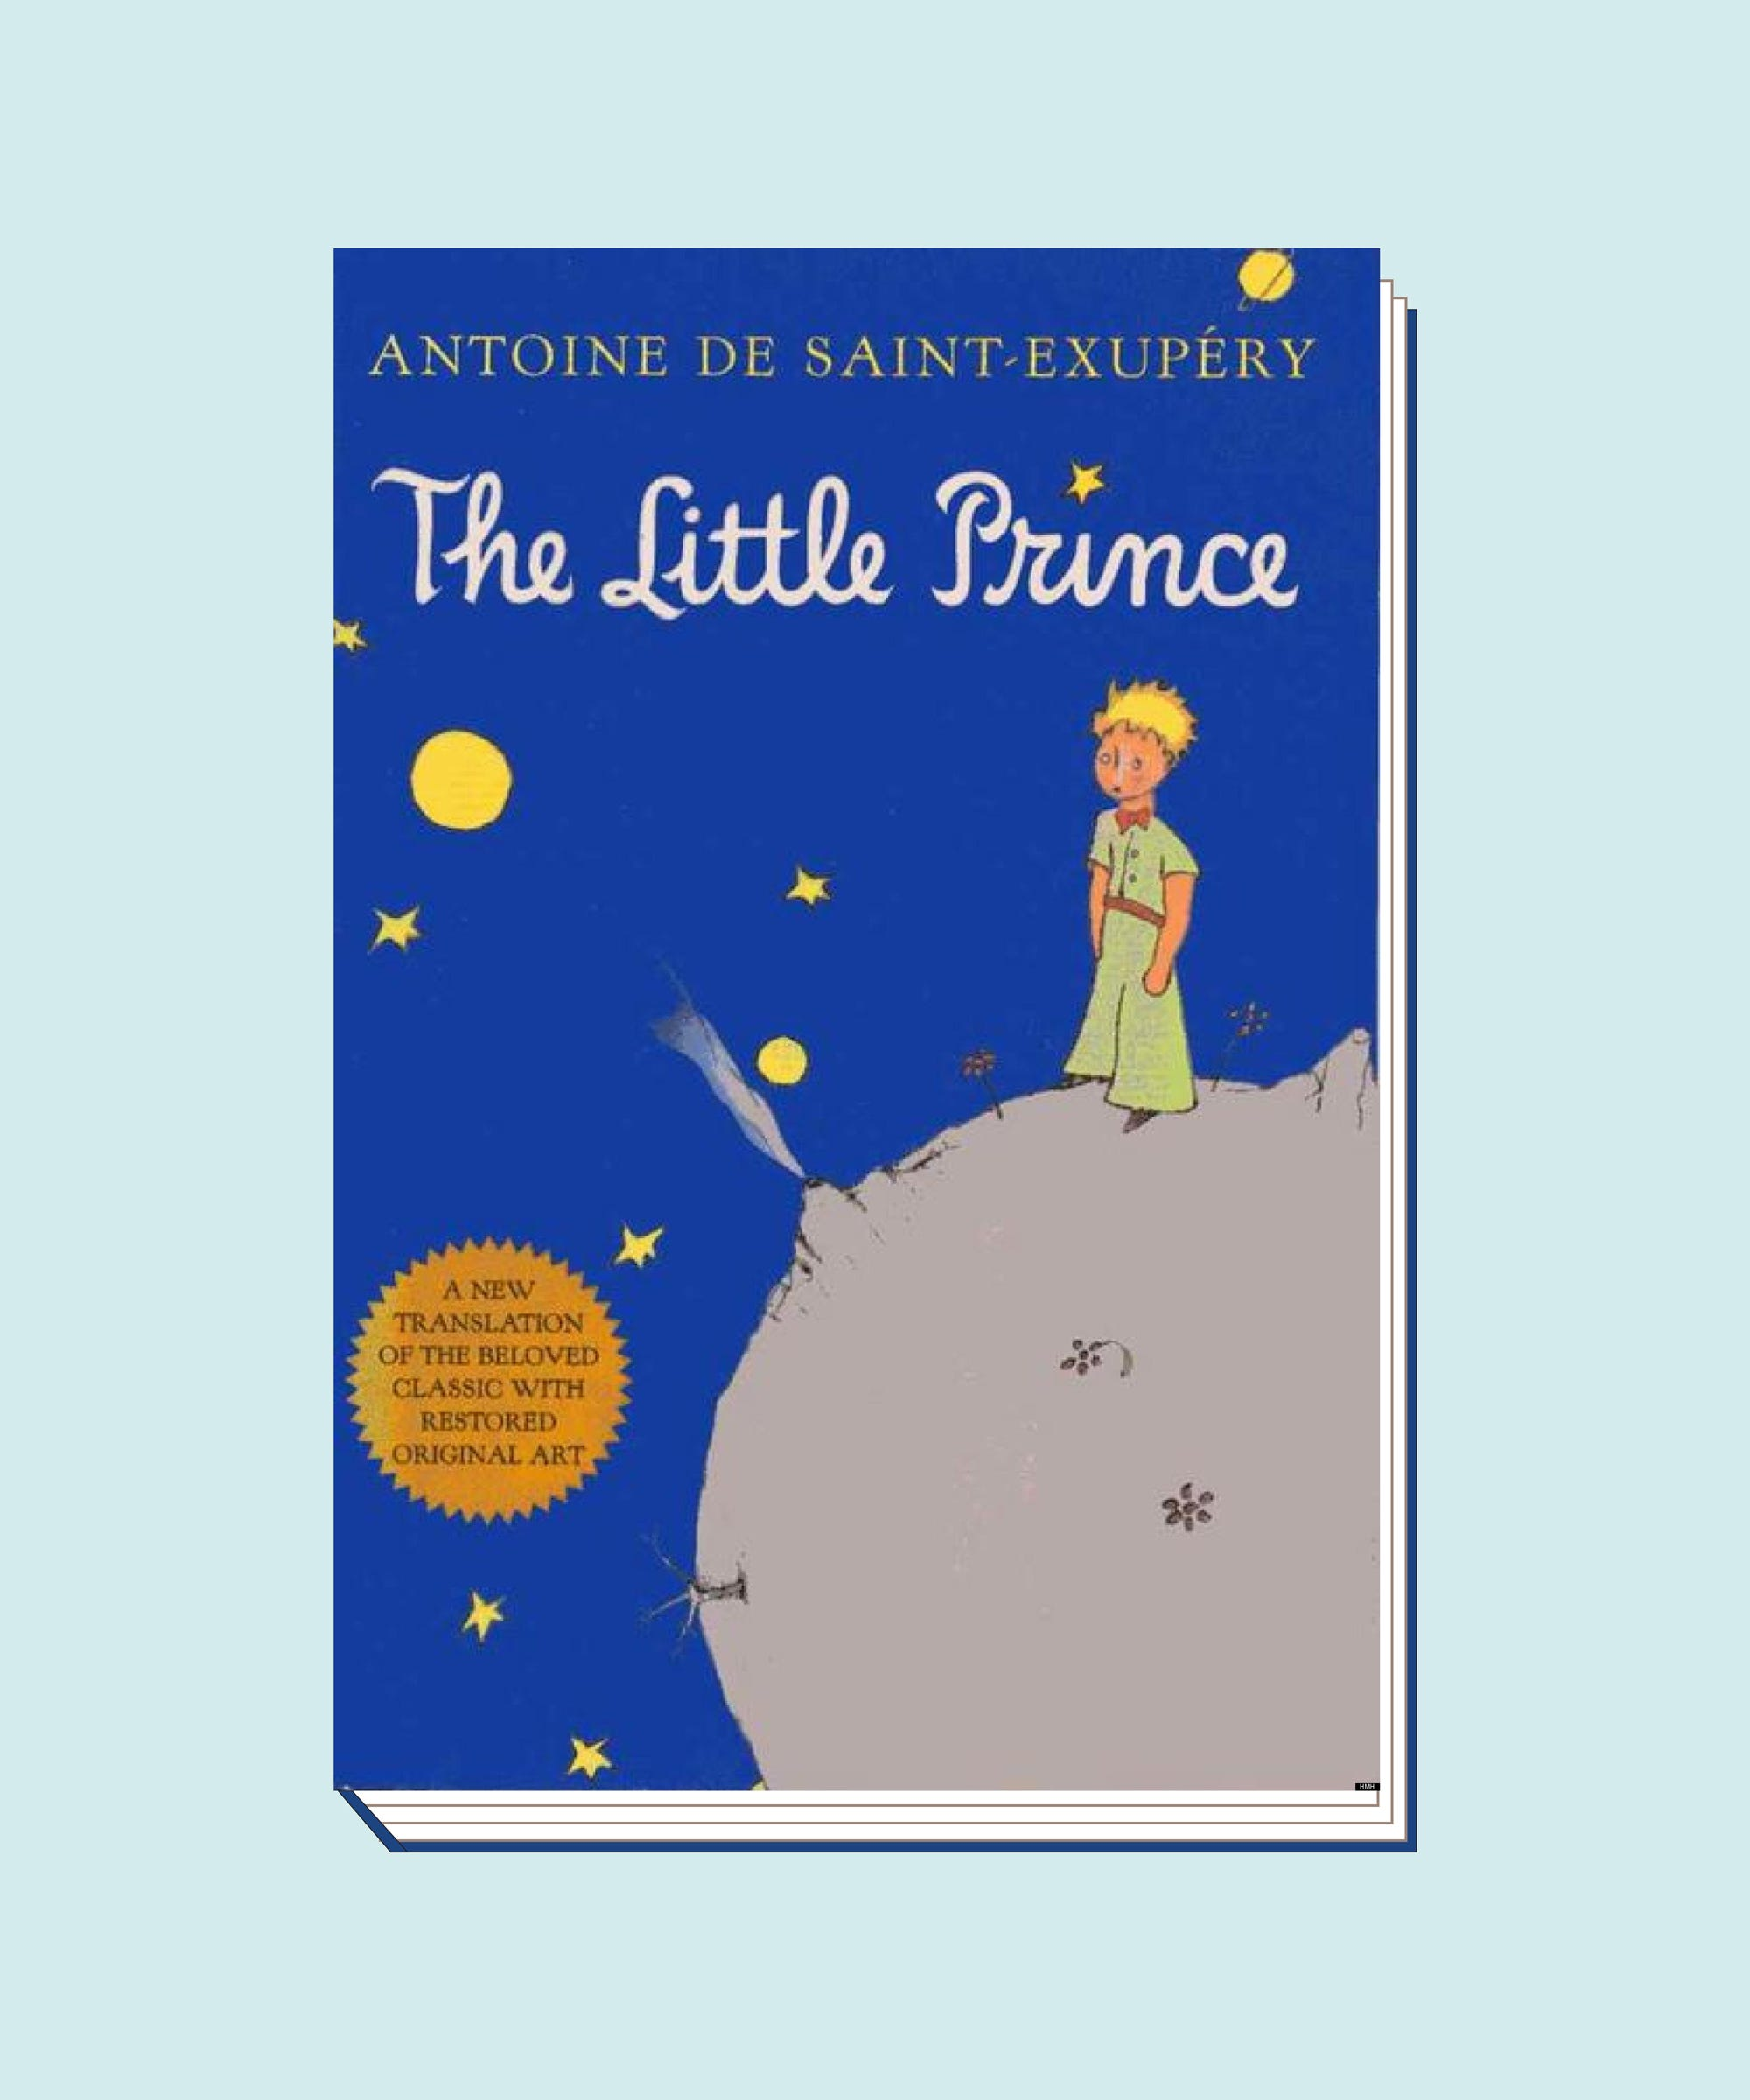 Quotes From The Little Prince | The Little Prince Quotes Inspirational Sayings